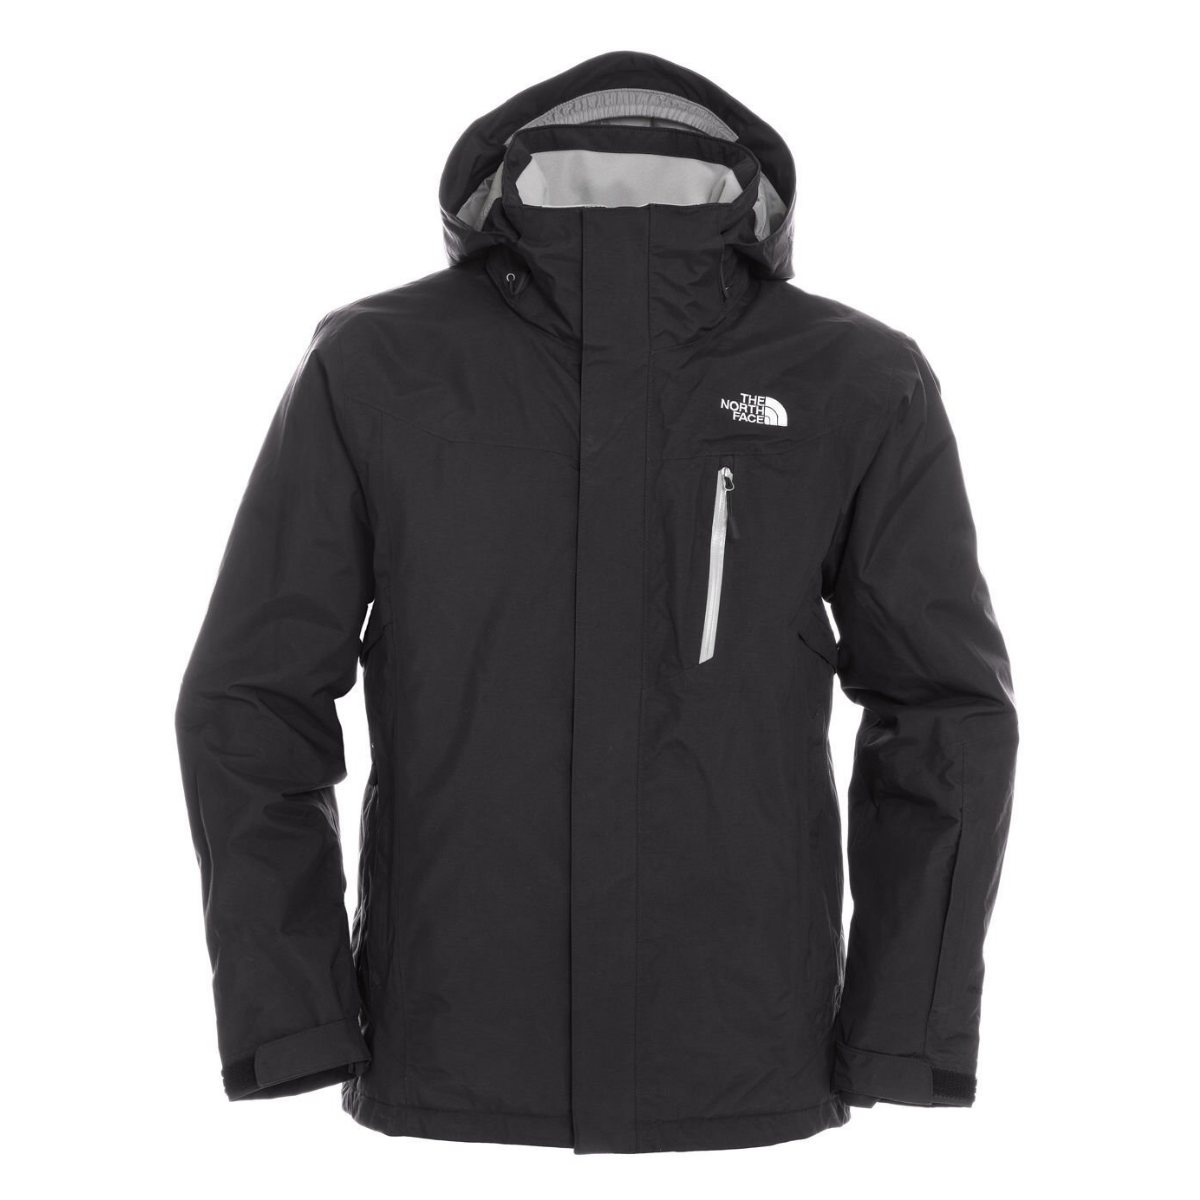 The-North-Face-Peskara-Jacket-Jacke-Skijacke-Winterjacke-Herren-Schwarz